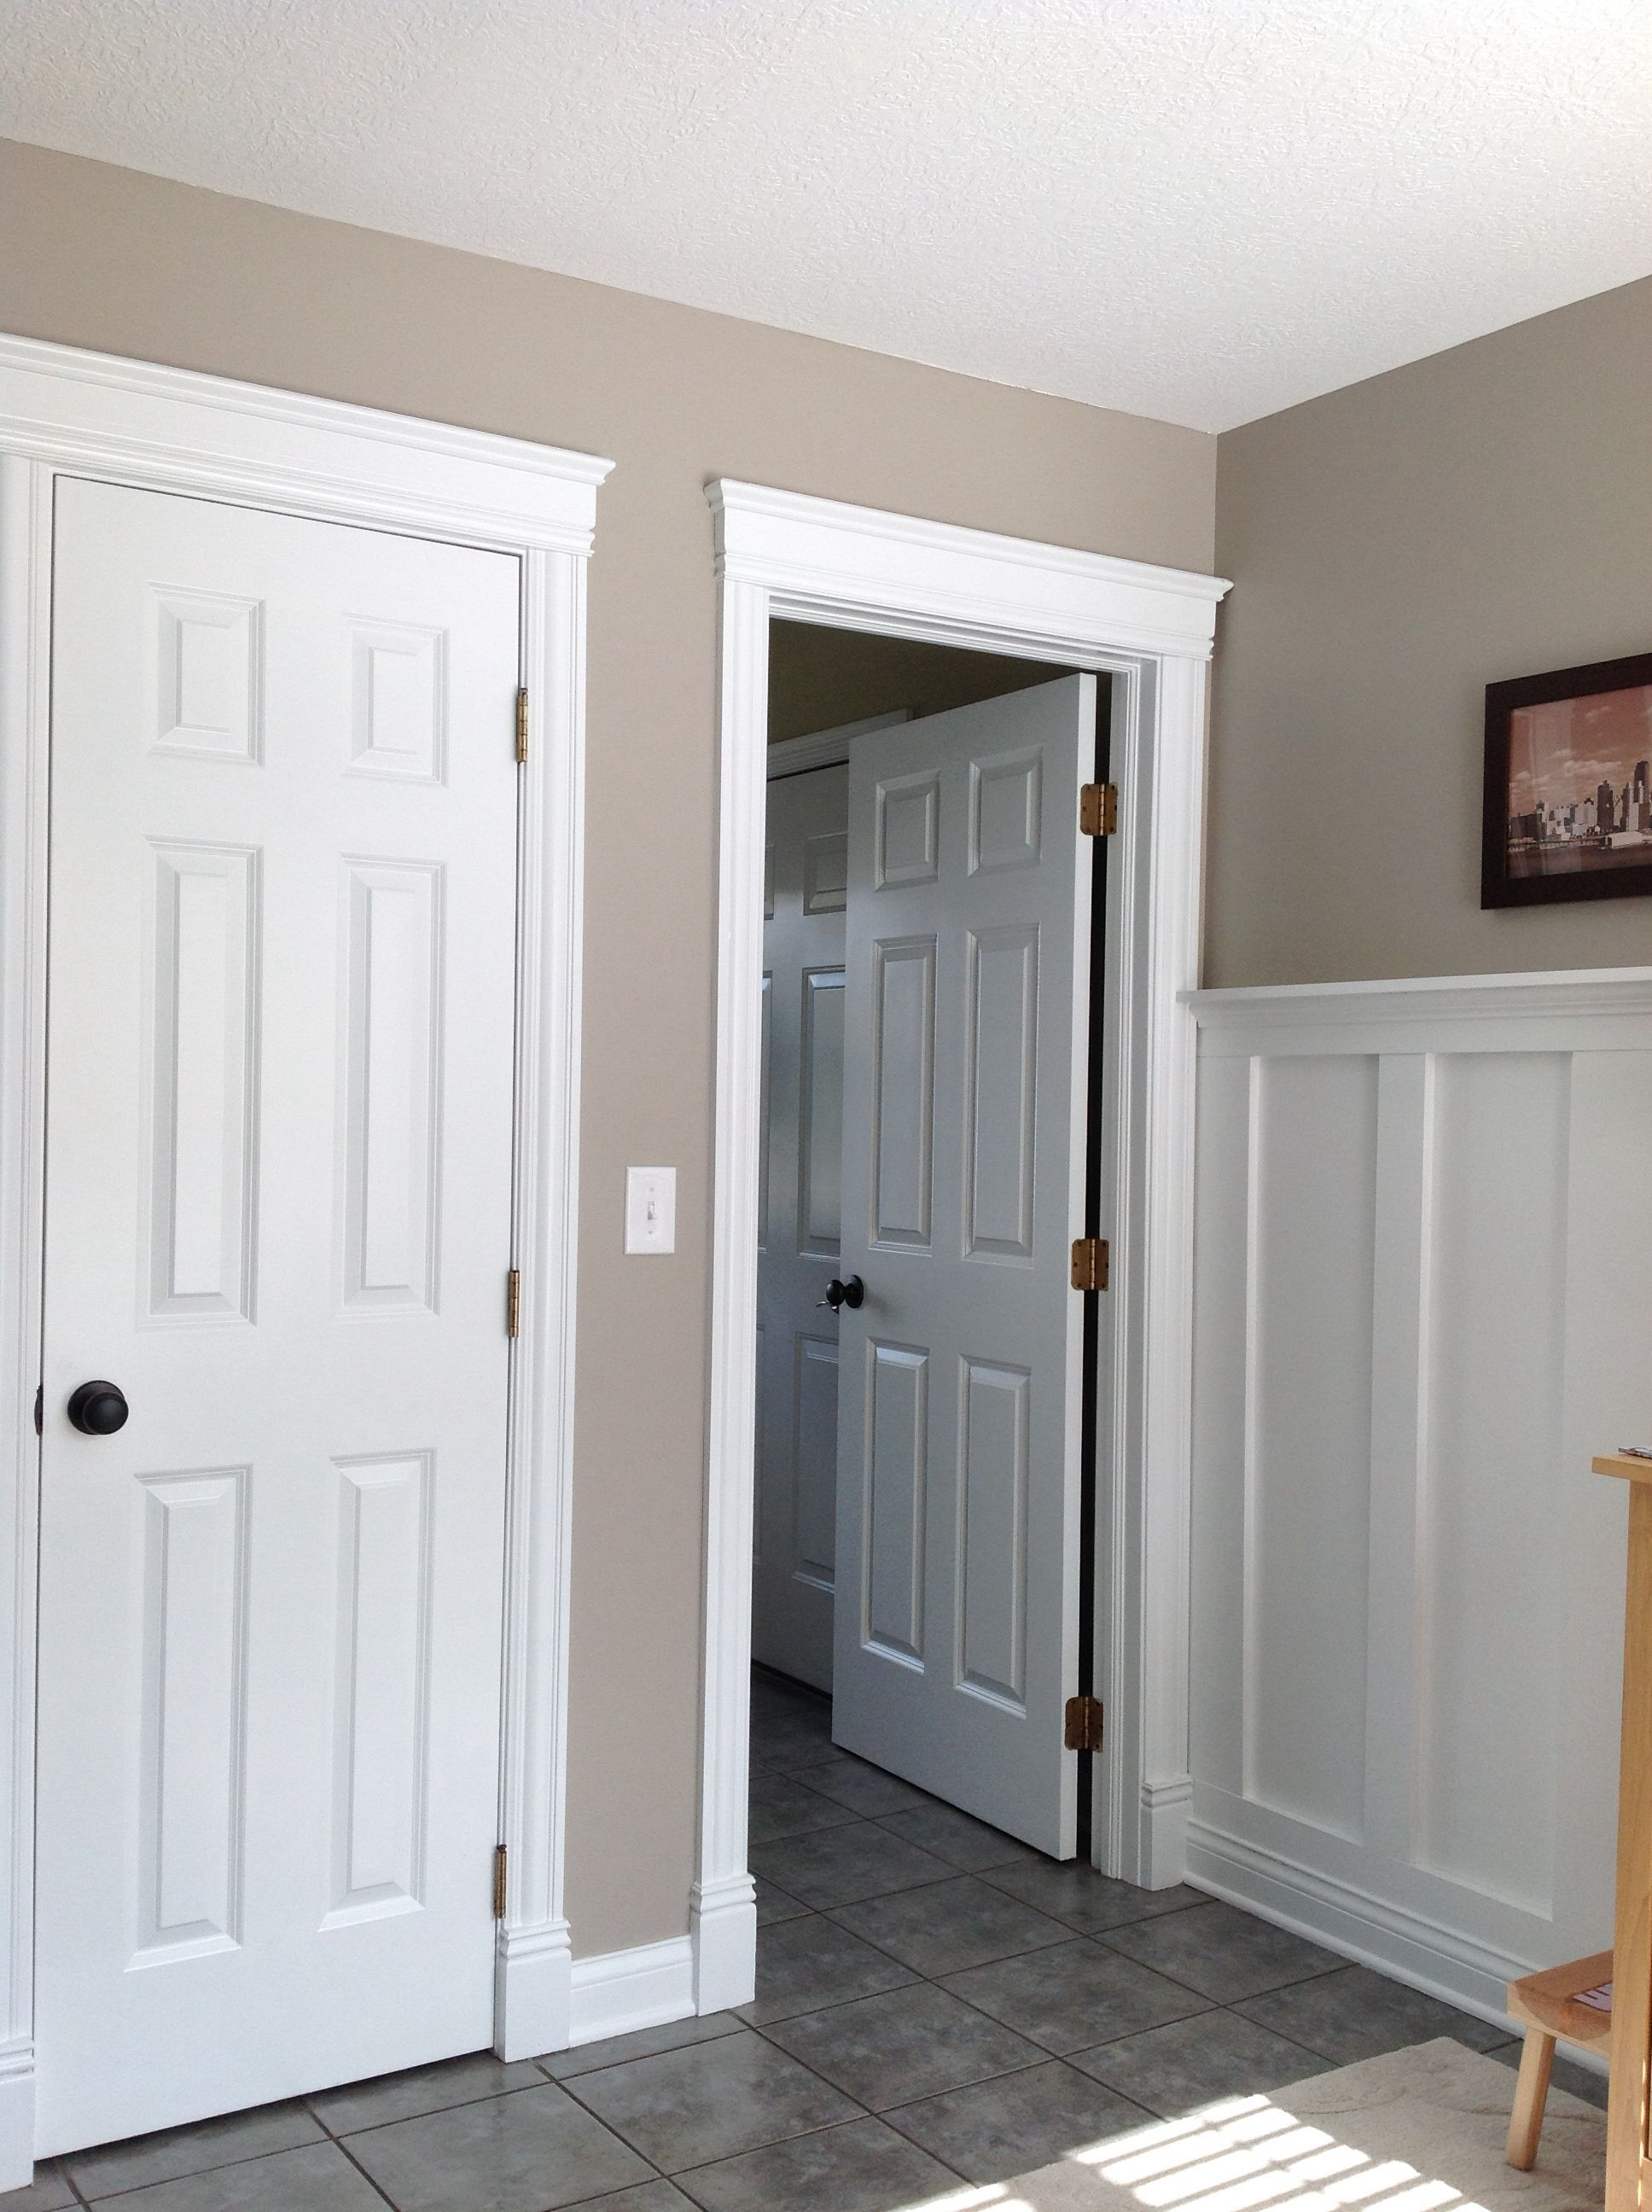 Perfect Greige Sherwin Williams Living Dining Kitchen Master Bedroom Bathroom Room Paint Colors Living Room Paint Small Basement Remodel